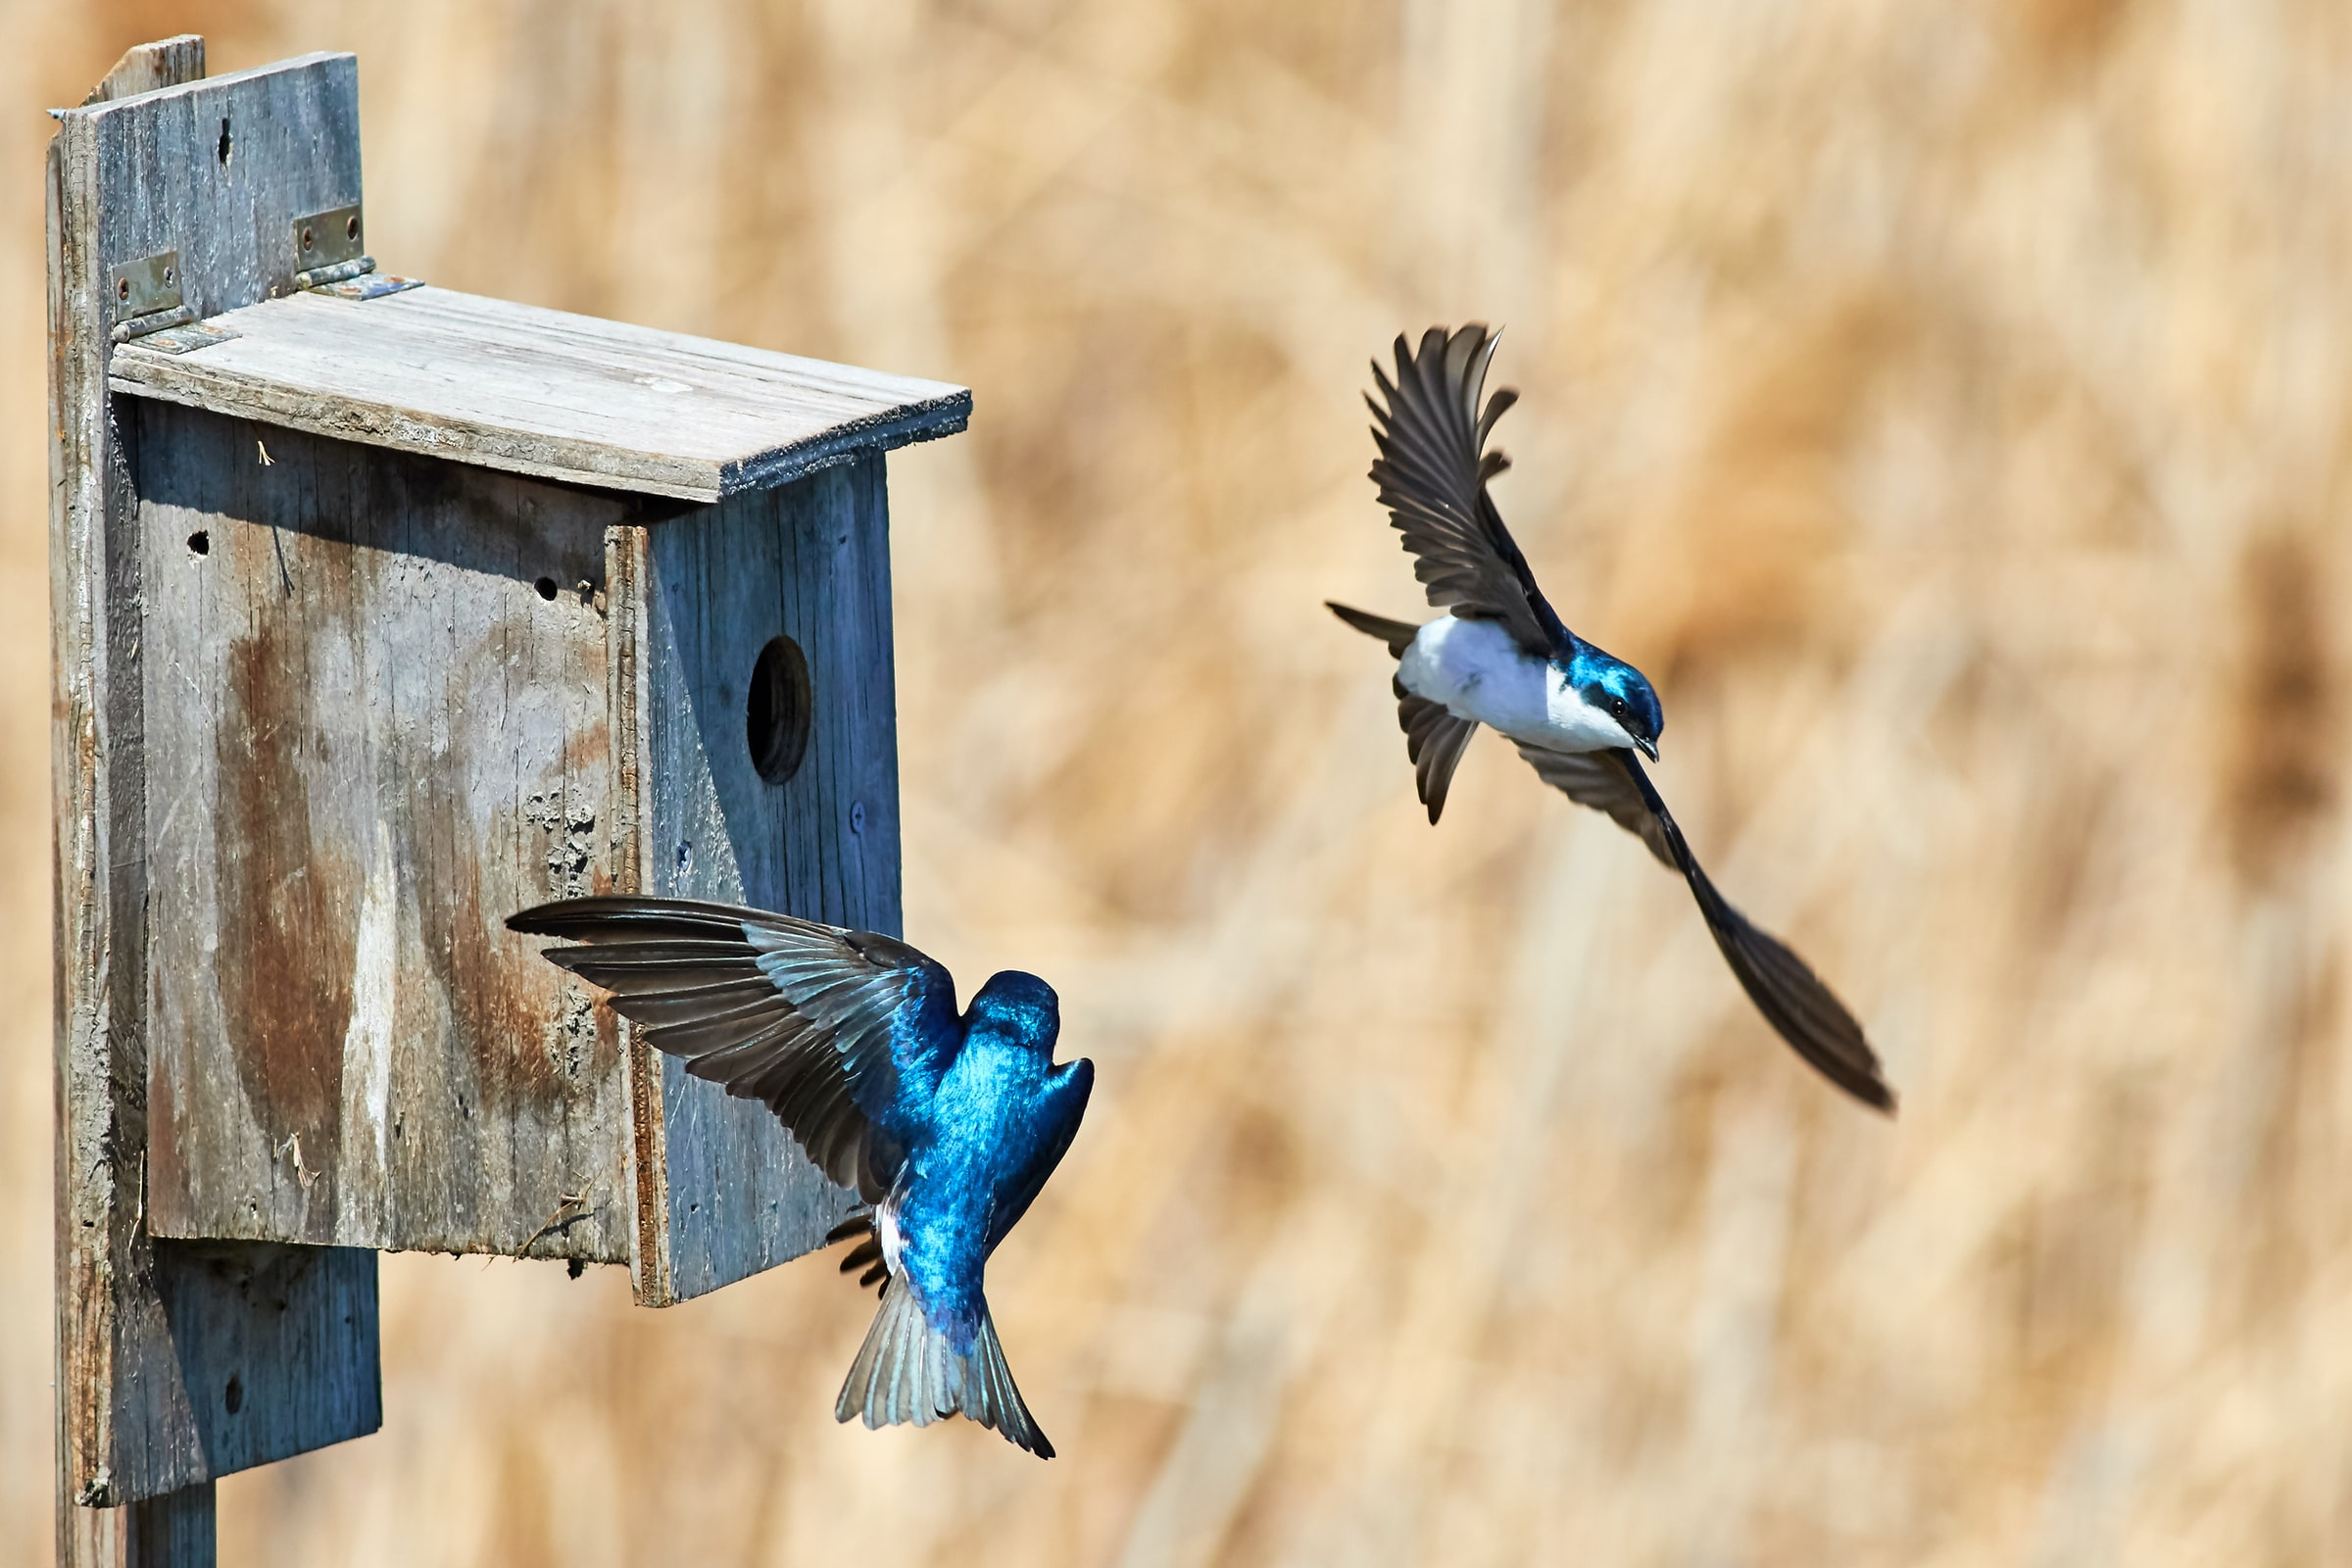 Two blue birds flying in front of a birdhouse